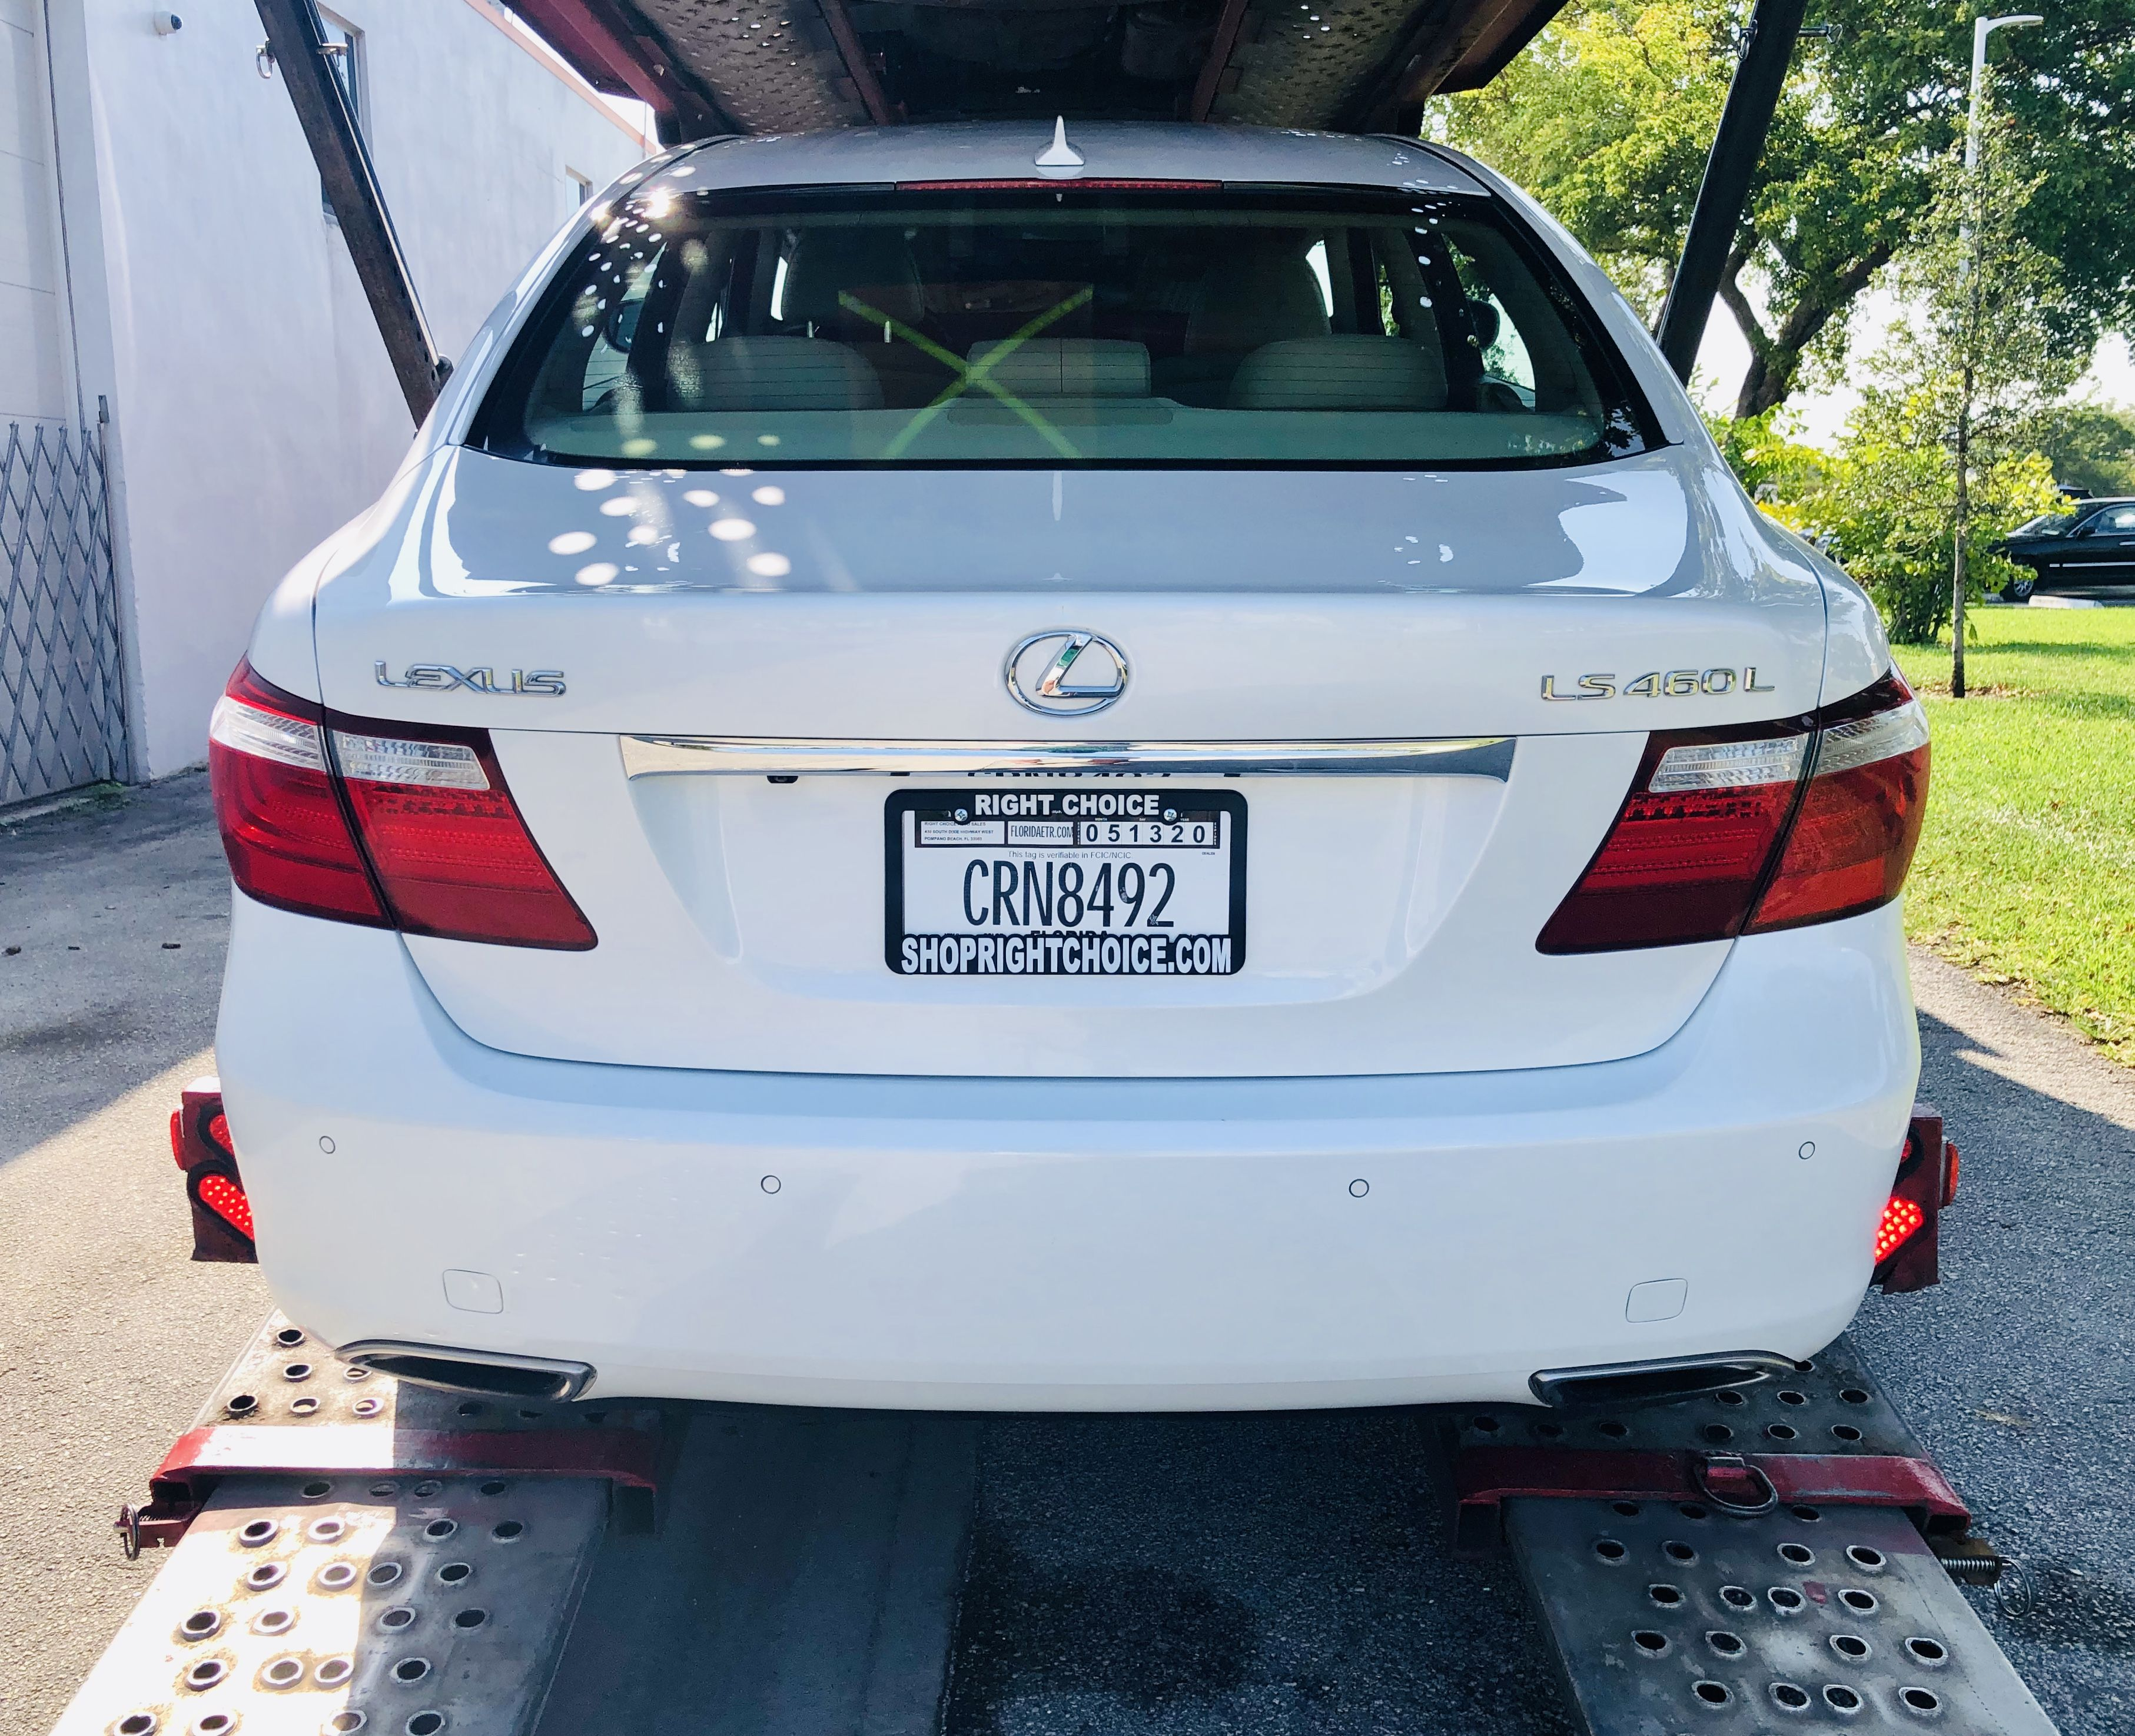 This gorgeous 2007 Lexus LS460 L is on its way to its new owner in Franklin, TN!  Right Choice Auto Sales in Pompano Beach, FL delivers the best used car deals in the country!  SHOPRIGHTCHOICE.COM for your next car!    #RightChoiceAutoSales #Lexus #LS460L #StarfirePearl #UsedLuxuryCars #FloridaCars #CarDelivery #GreatDeals #WeDeliverHappiness #BuyCarsFromHome #StaySafe #EnjoyLife #LuxuryForLess #SouthFlorida #CarDealer #UsedCars #CarsForSale #GreatDeals #ShopOnline